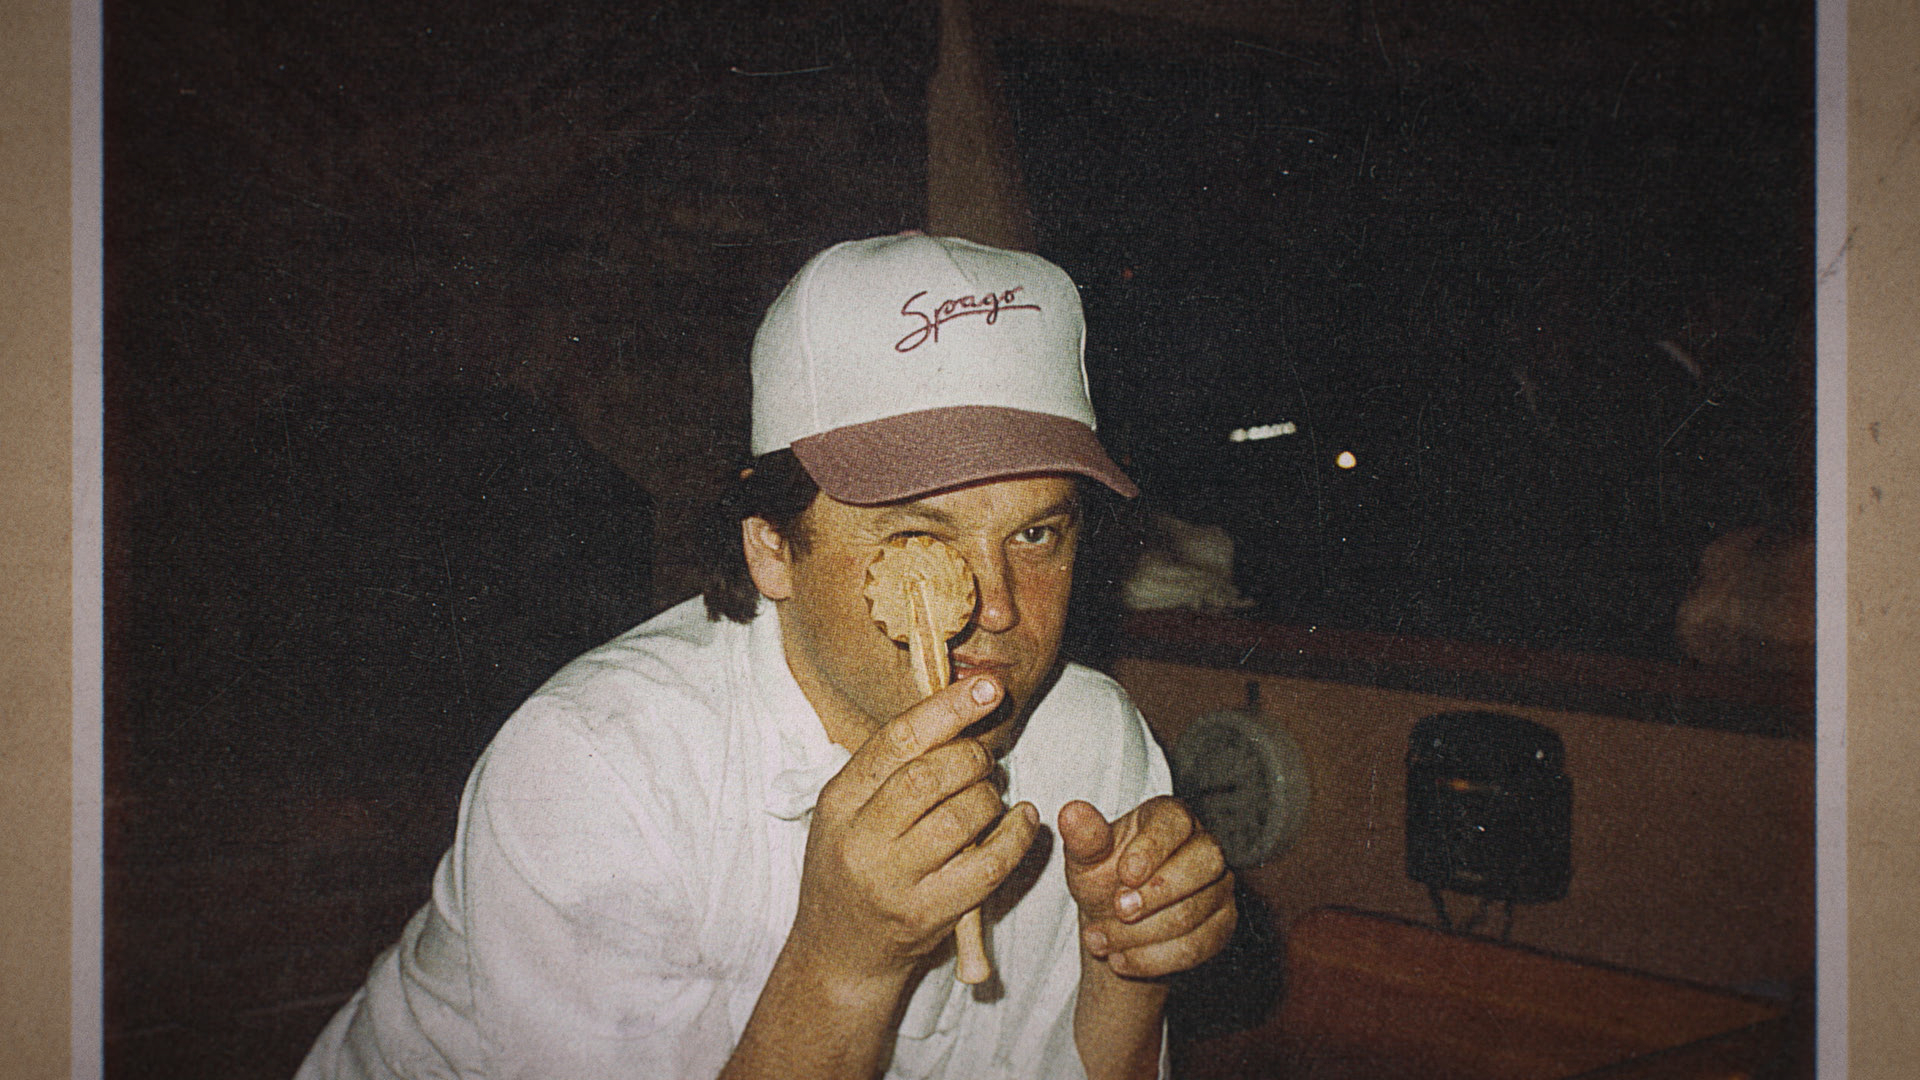 A young man, Wolfgang Puck, in a Spago baseball hat holding a ravioli cutter up to his eye